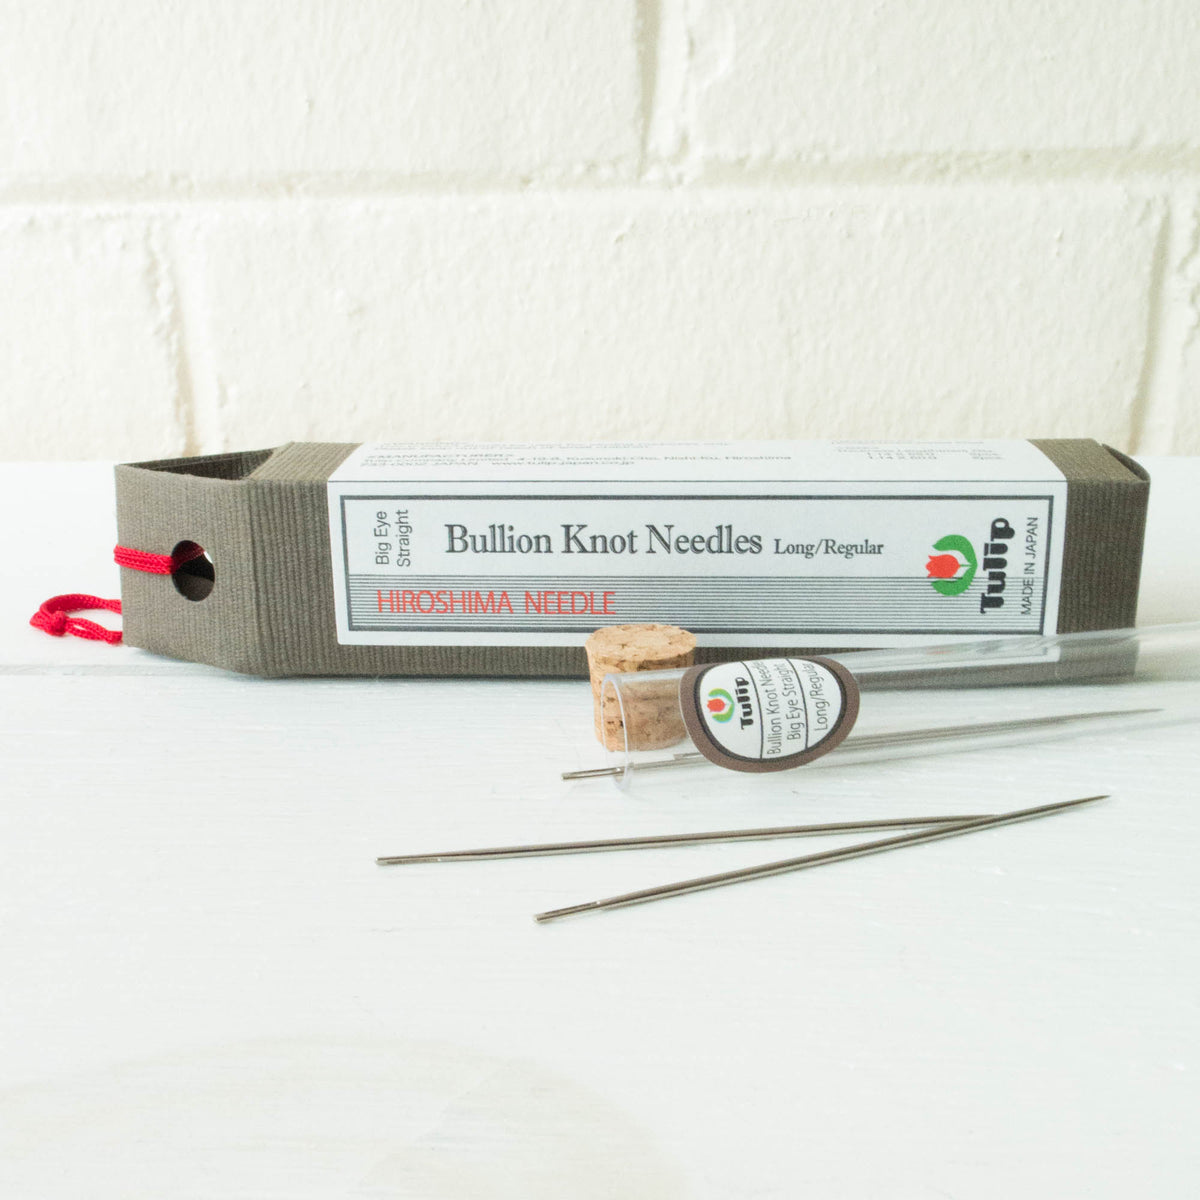 Tulip Hiroshima Bullion Knot Needles Needles - Snuggly Monkey